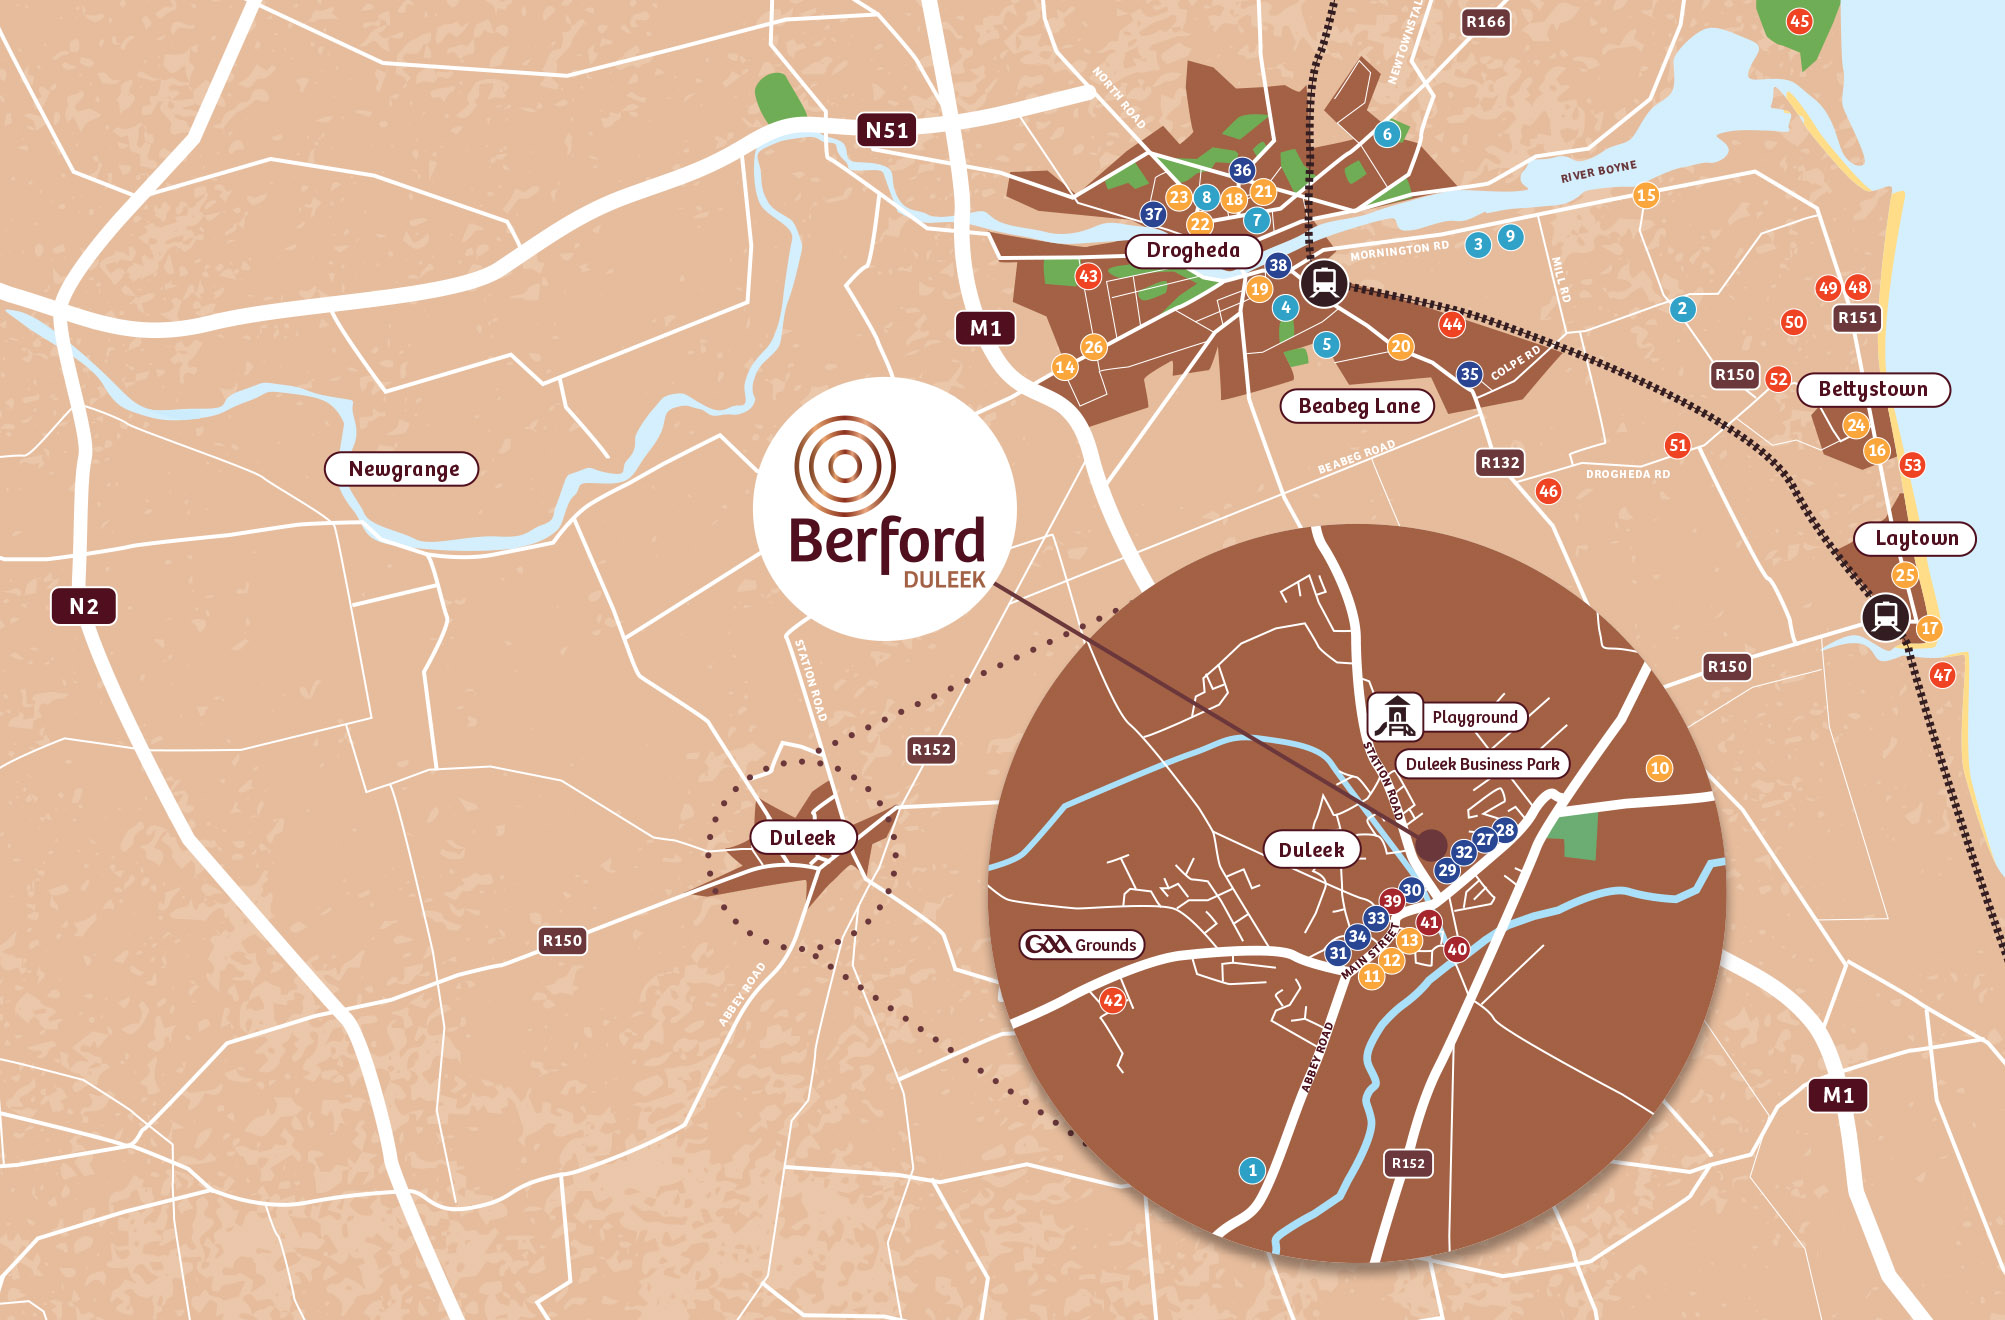 Berford location map